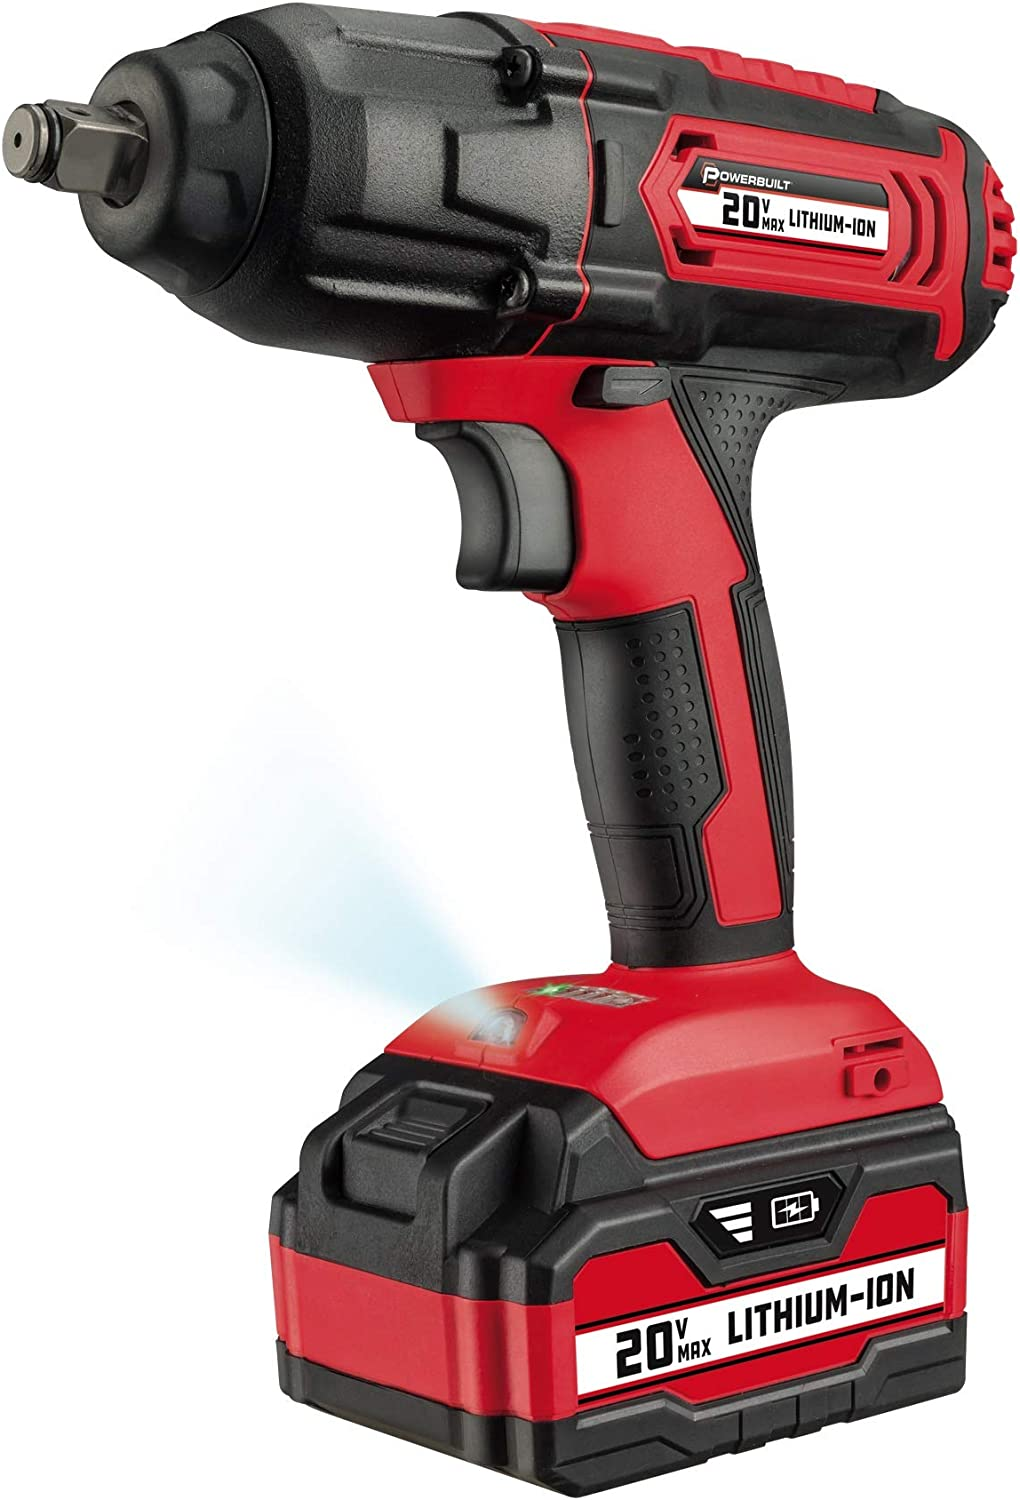 """Powerbuilt 20V Cordless 1/2"""" Impact Wrench, Variable Speed, 350 ft-lb. Max Torque, 3,000 IPM, 4 Impact Settings, 4.0 Ah Lithium-Ion Battery, LED Light, 2 Hour Charge, Storage Case - 240133"""